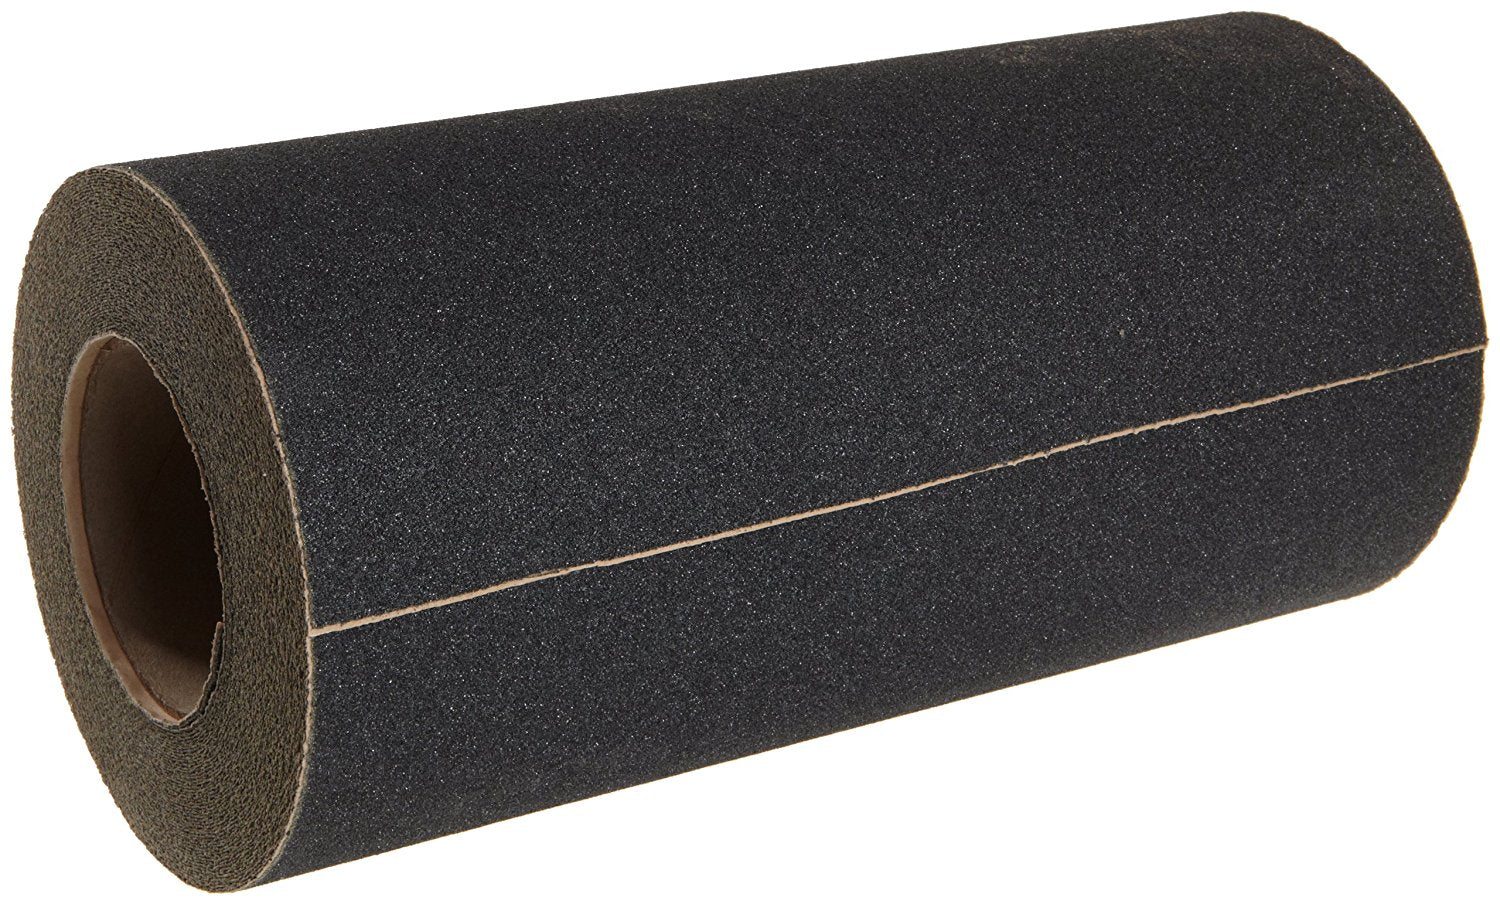 "12"" X 60' Roll BLACK Abrasive Tape - Case of 2 - Limited Stock"